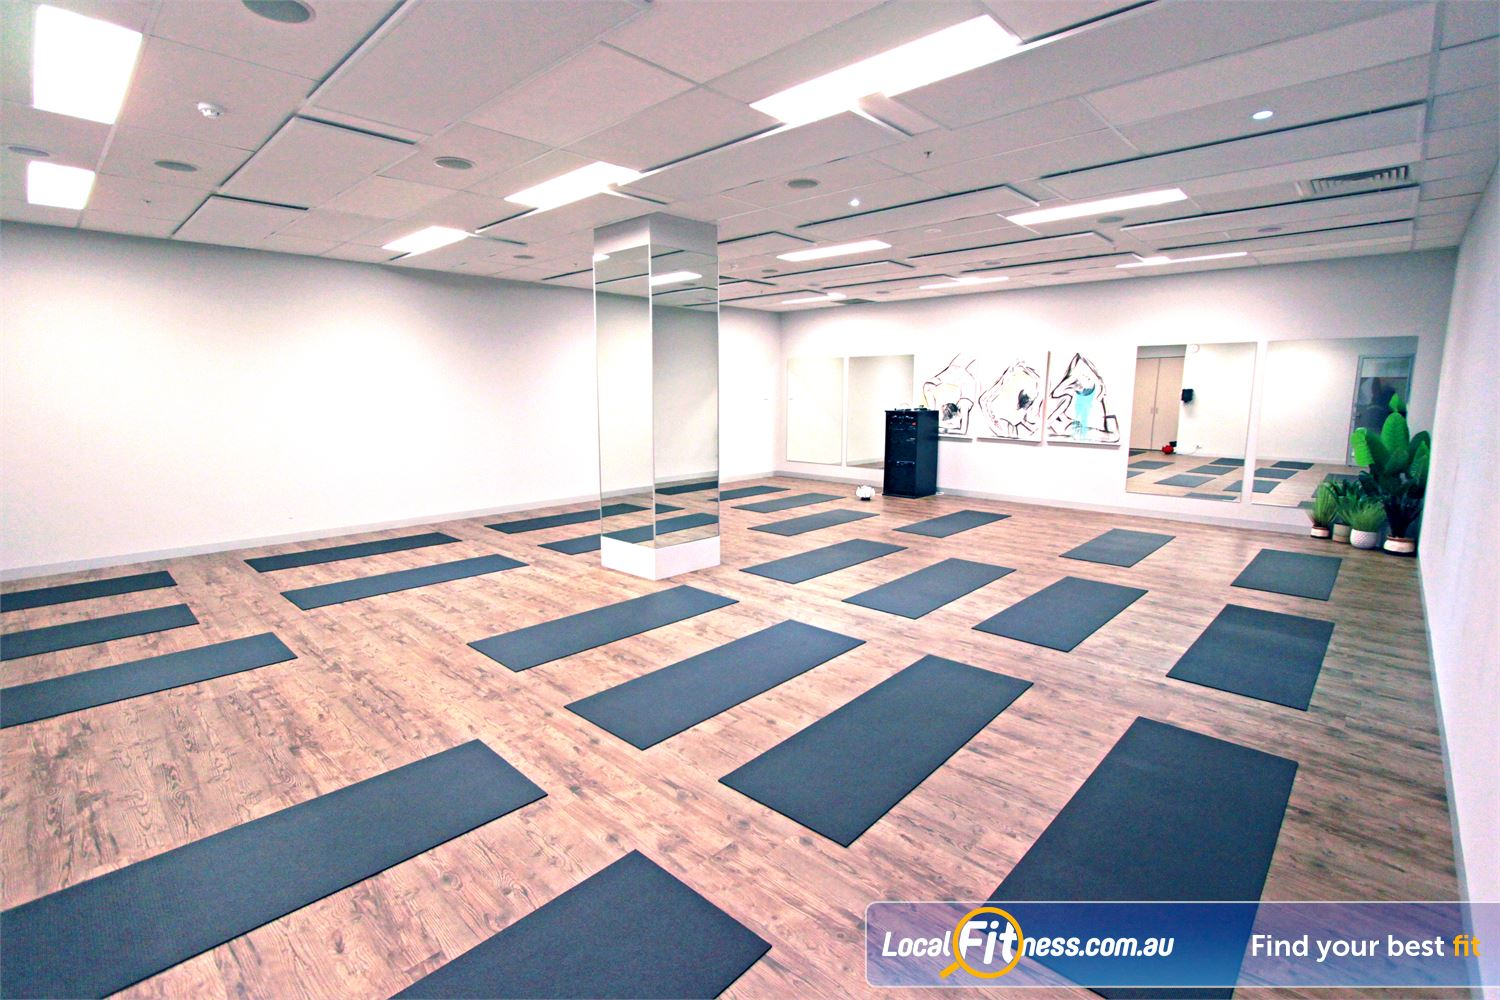 South Pacific Health Clubs Mentone Dedicated wellness studio with Mentone HOT Yoga, Pilates, Barre and more.